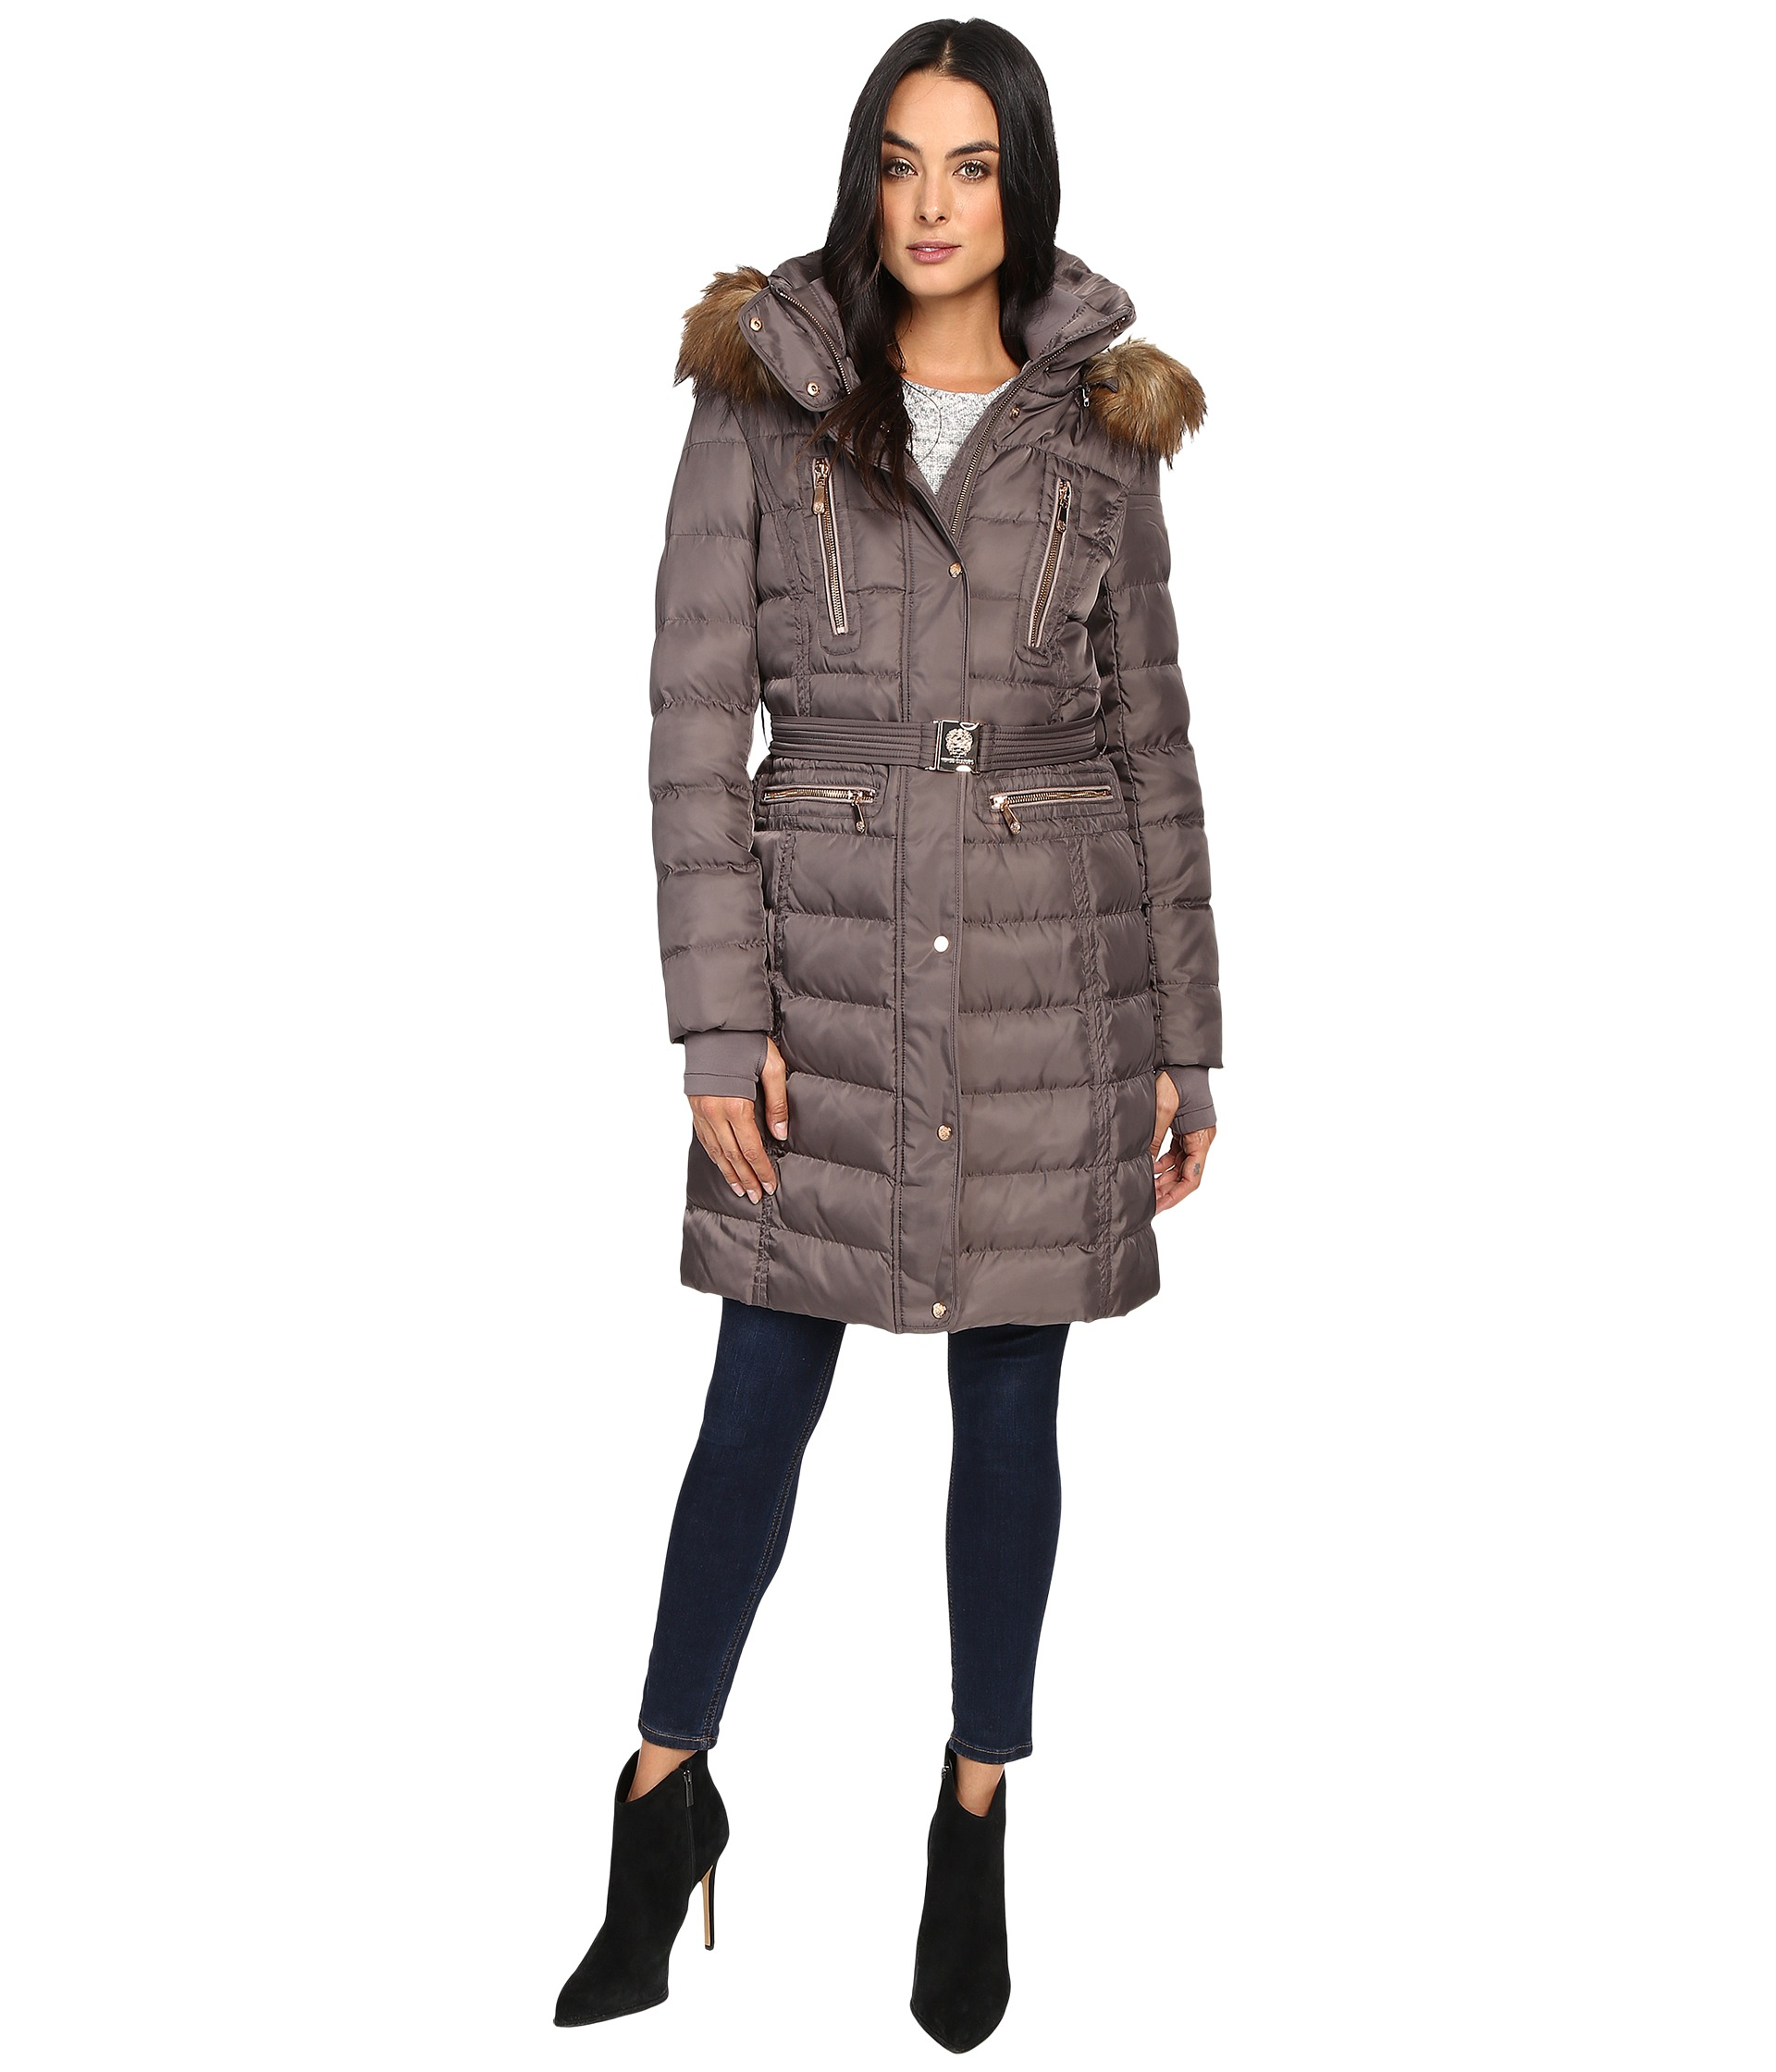 Wool Coat | Shipped Free at Zappos